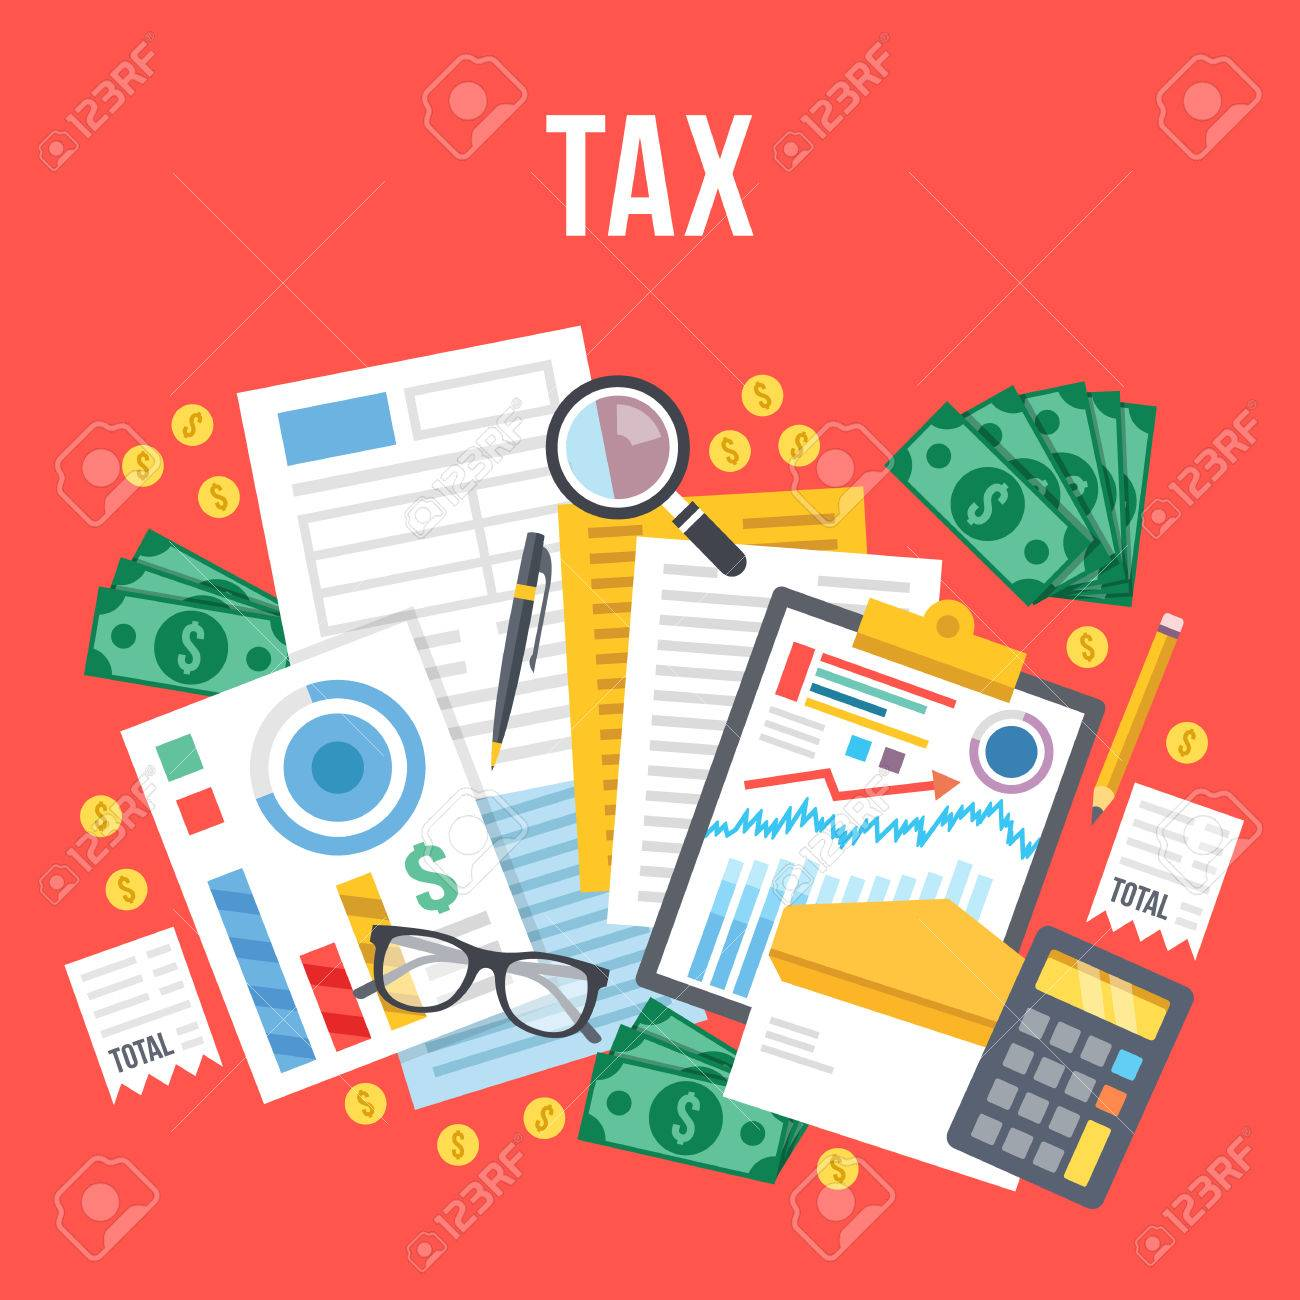 Tax calculation, budget calculation, accounting, paperwork concept. Top view. Modern flat design vector illustration - 56655247